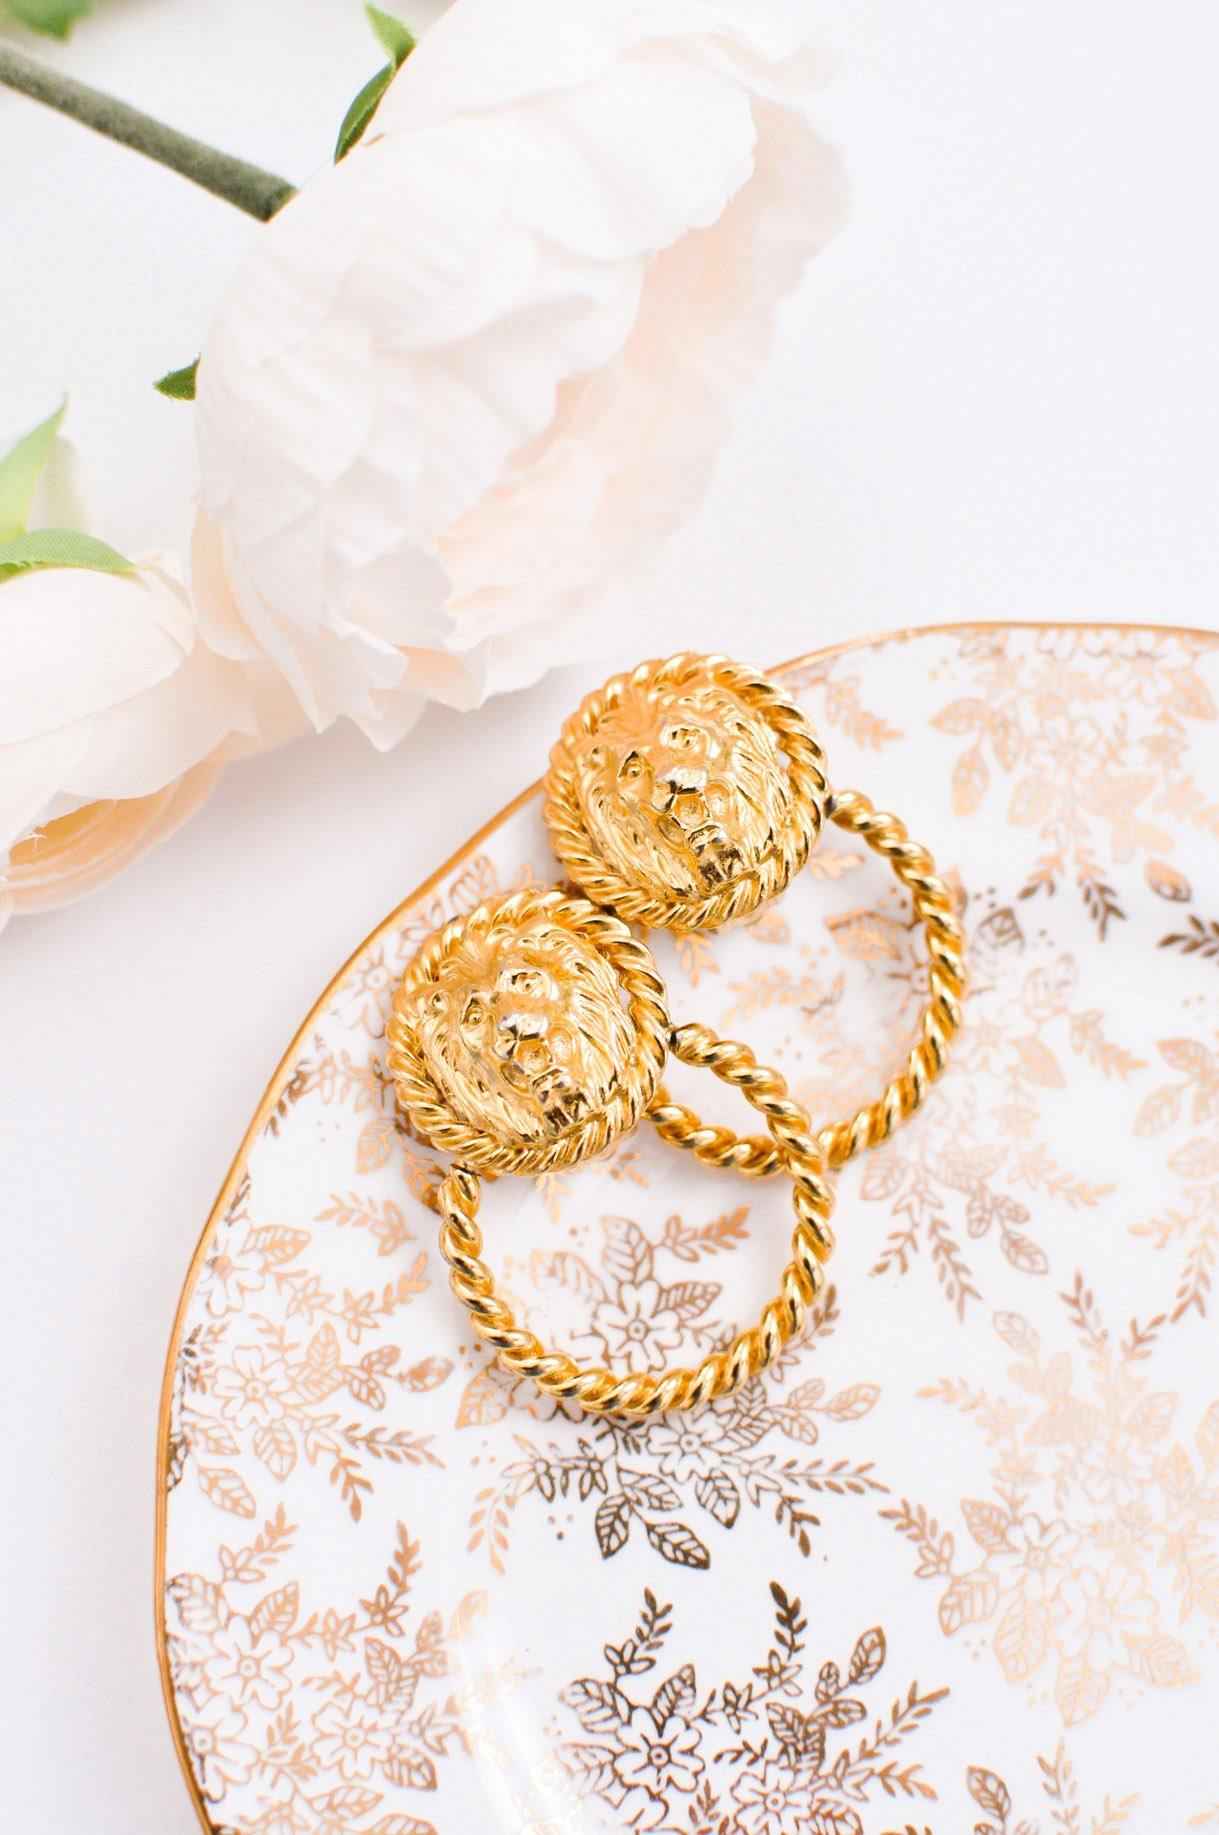 Vintage Gold Lion Rope Door Knocker Earrings from Sweet and Spark.